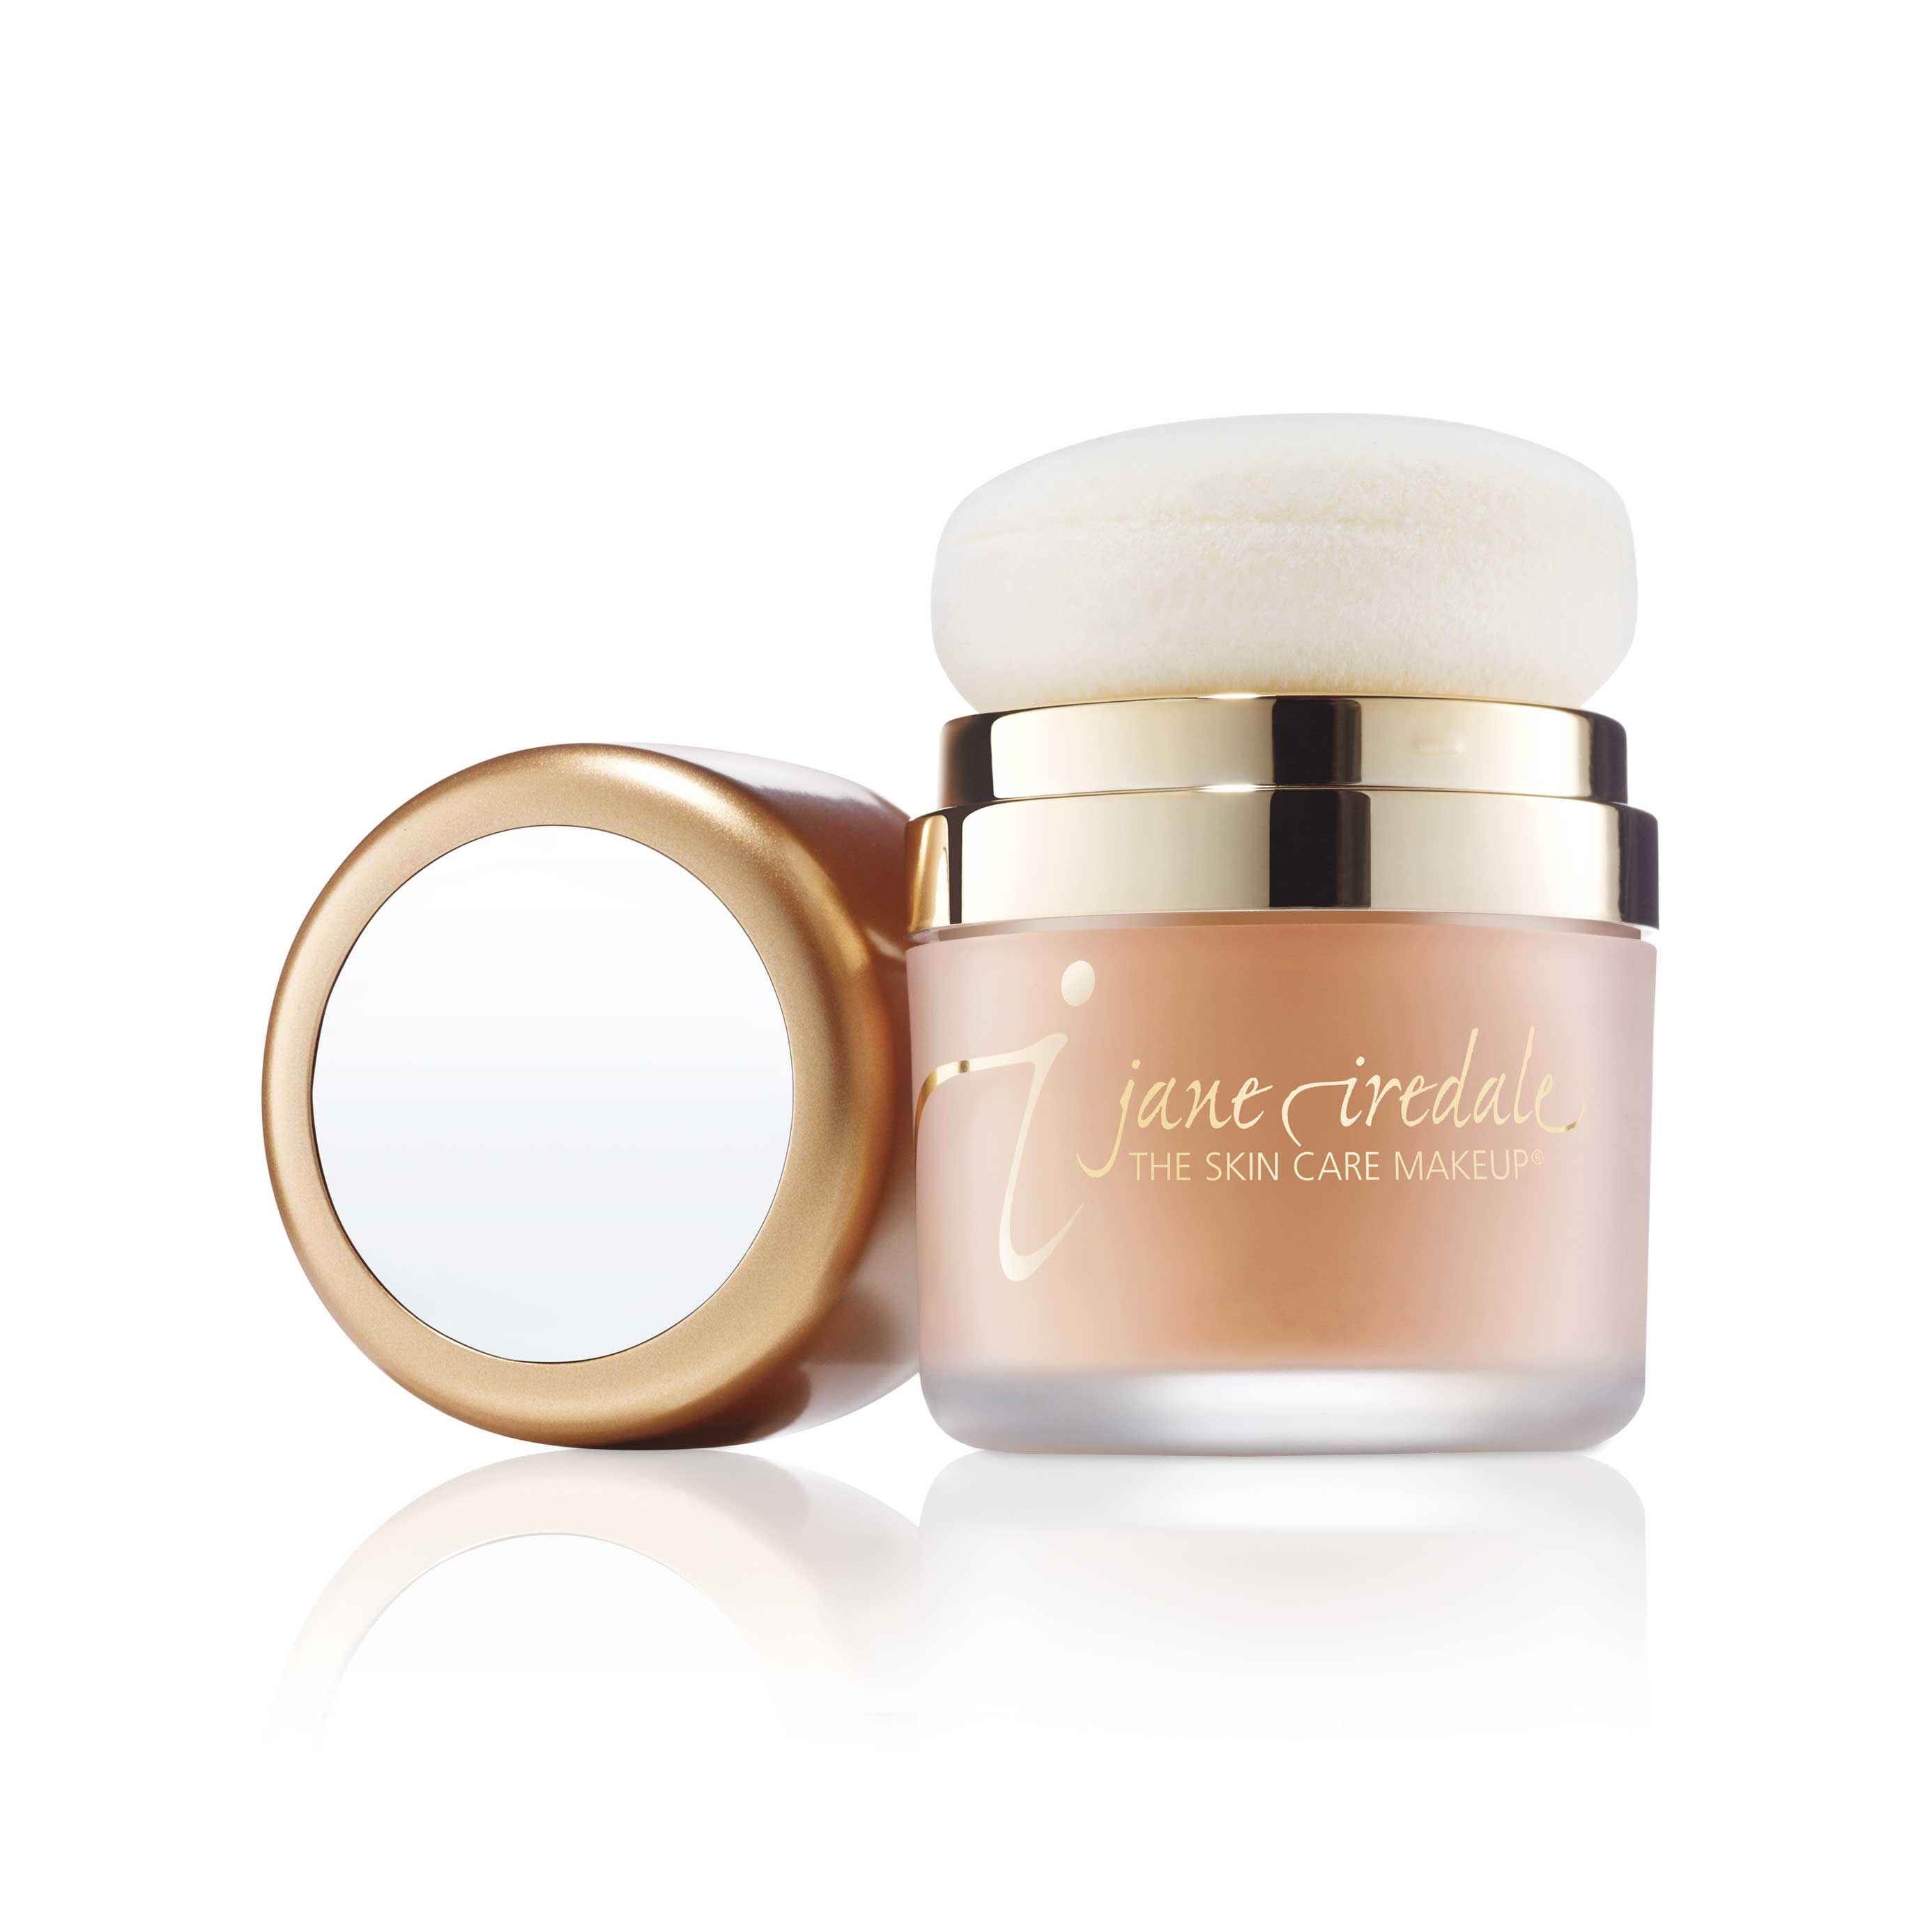 Powder me spf dry mineral powdered sunscreen jane iredale powder me spf dry sunscreen nvjuhfo Choice Image